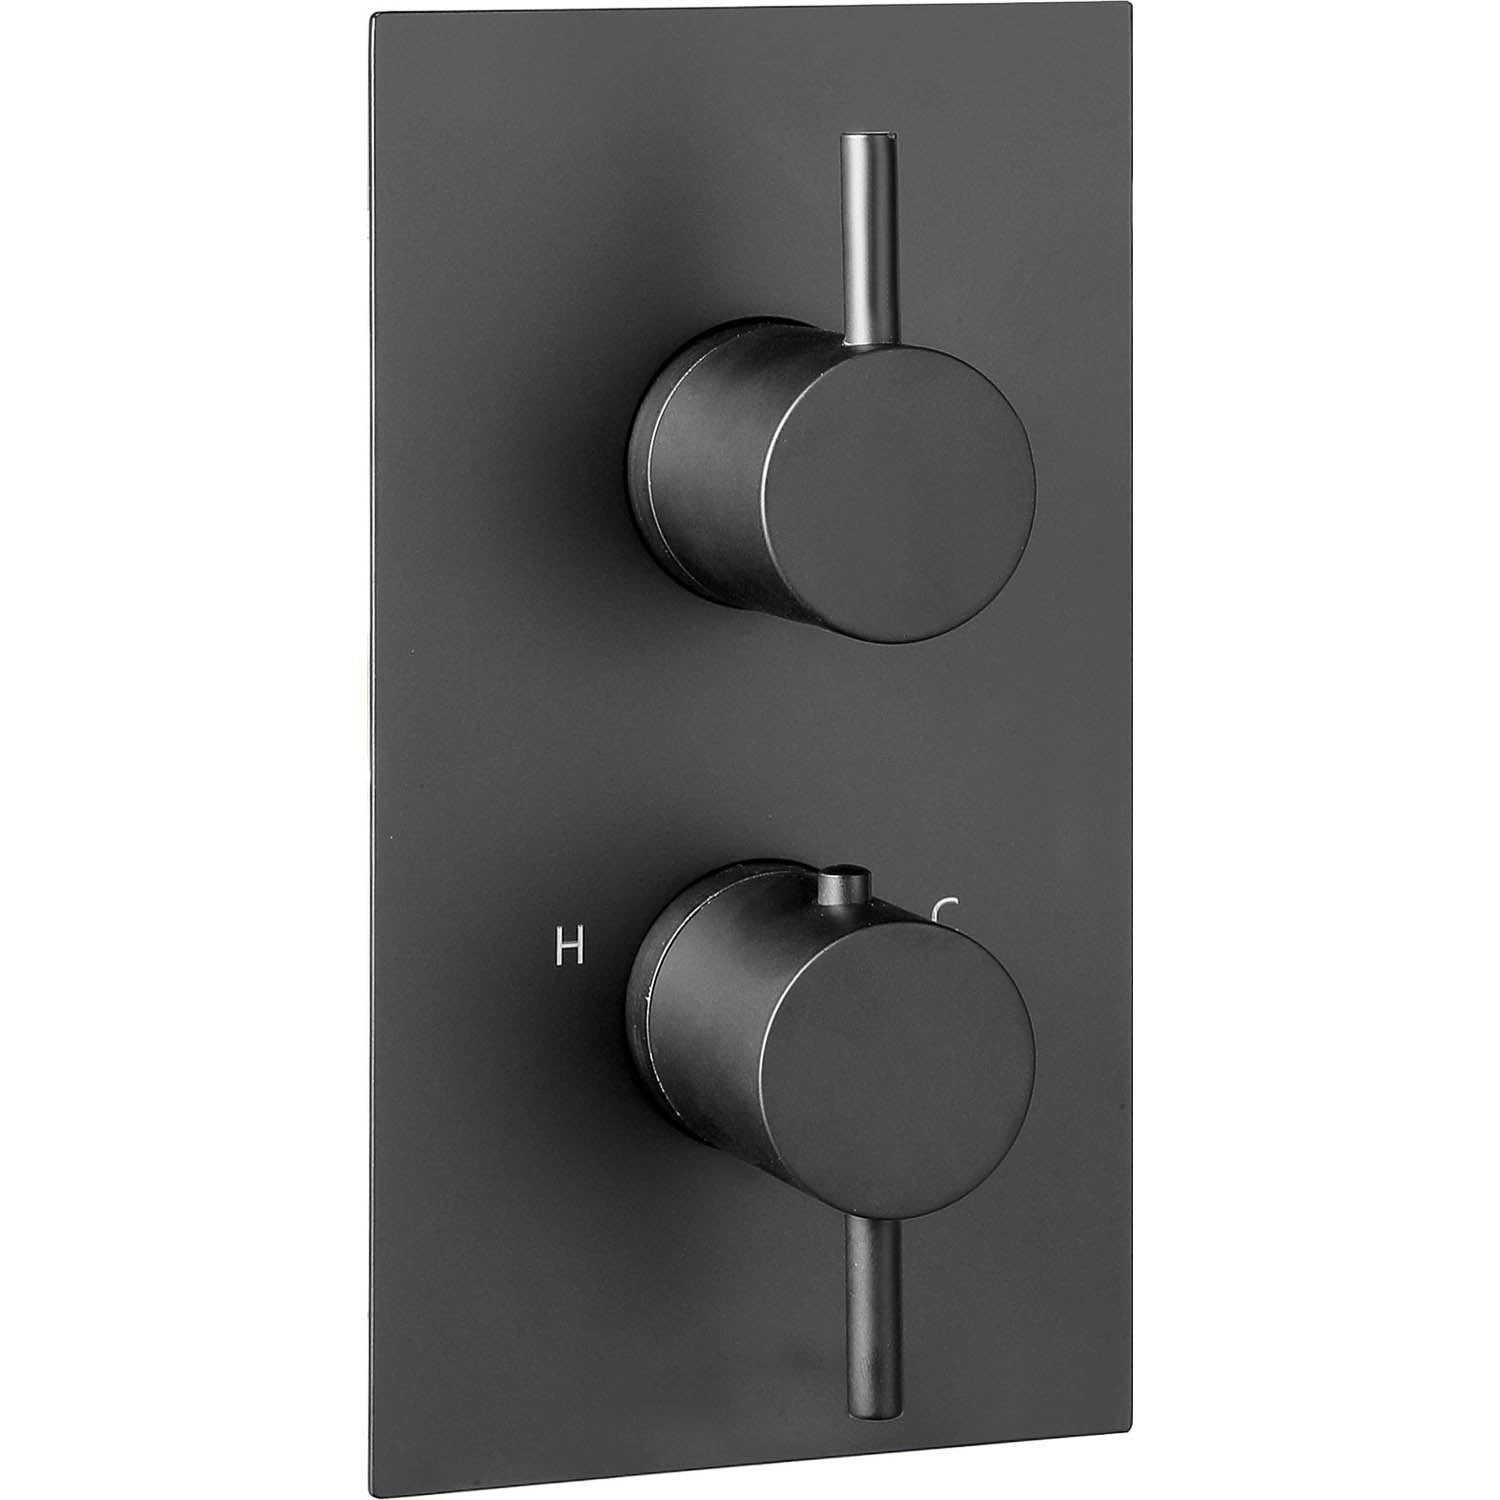 Single outlet Libero Concealed Shower Valve with a matt black finish on a white background